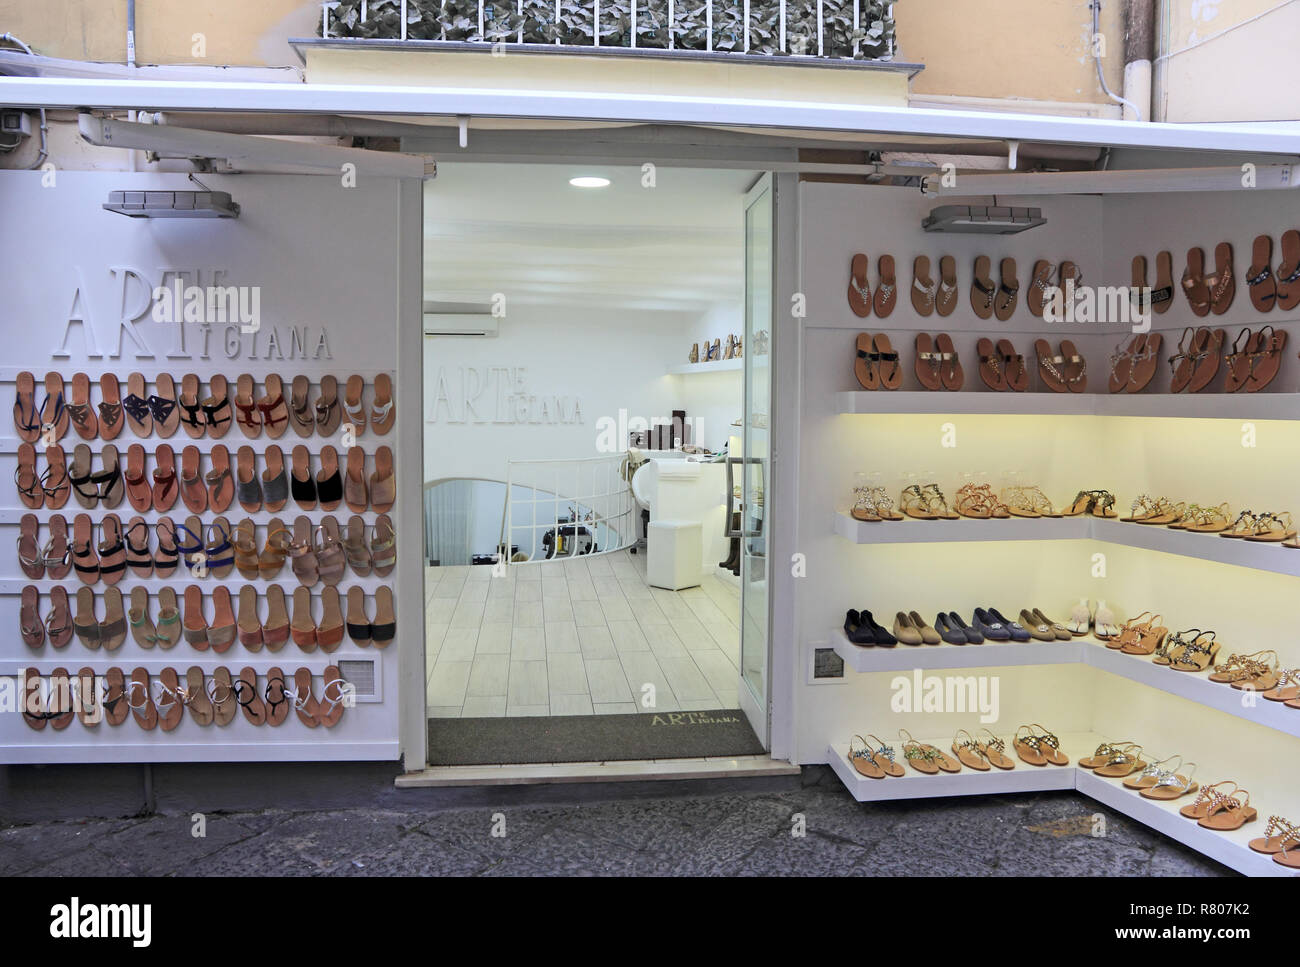 Arte Boutique Mon Compte Sorrento Shop Photos Sorrento Shop Images Alamy